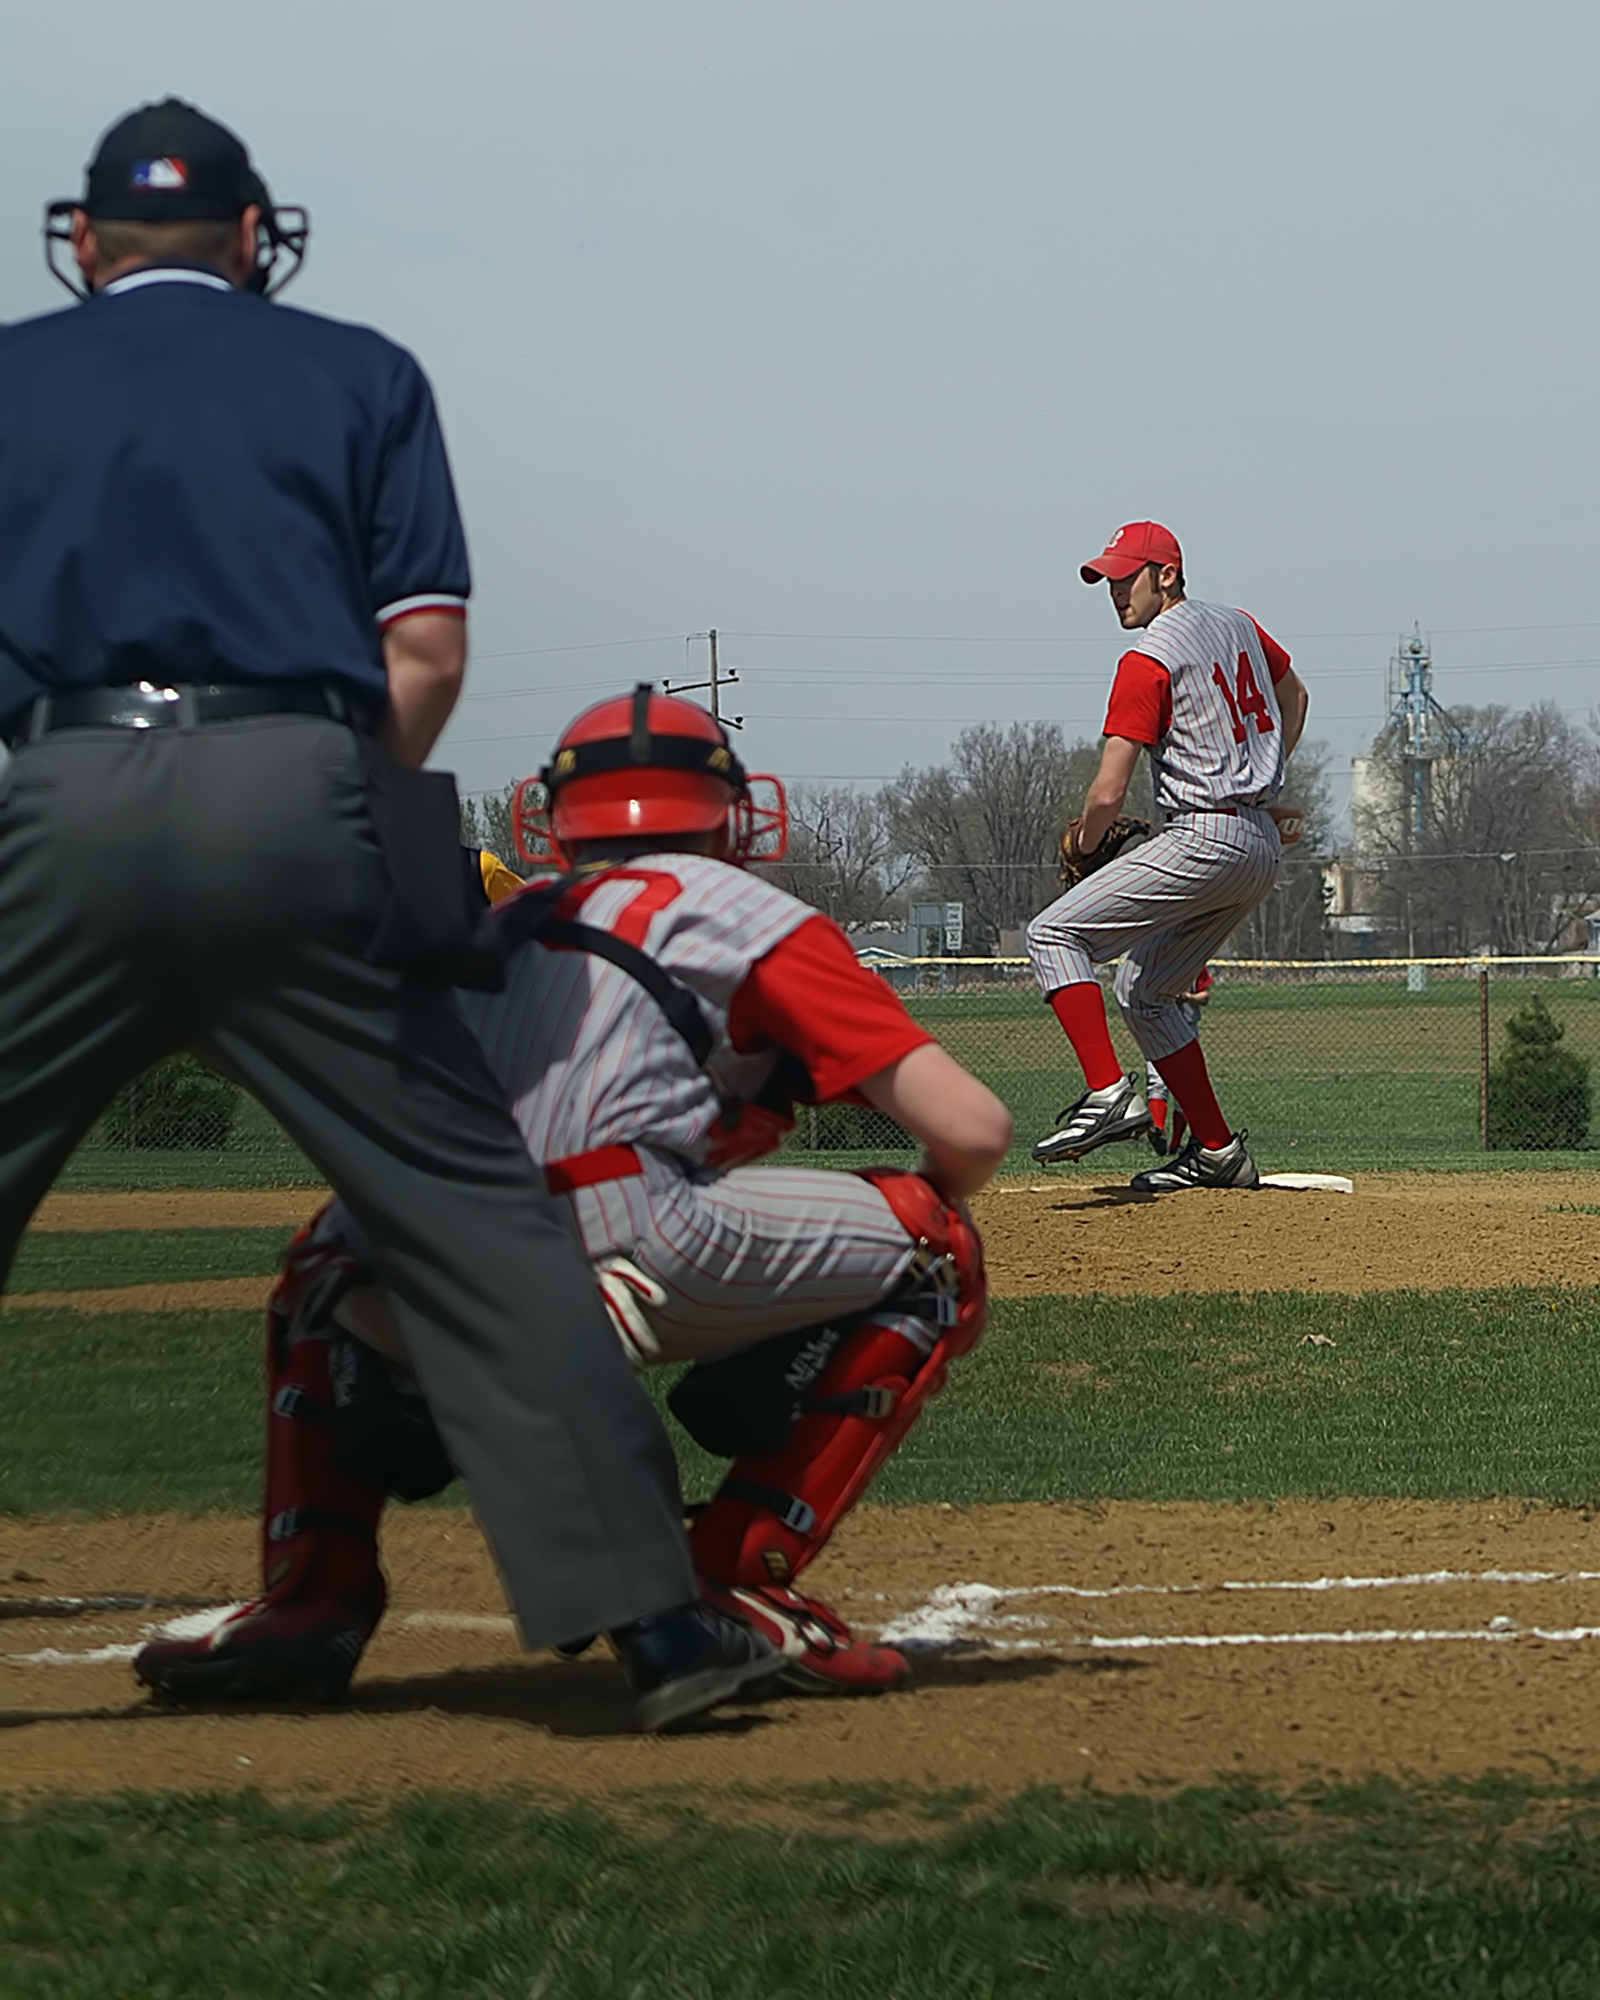 Umpire standing behind catcher at home plate while pitcher winds up his arm at a baseball game.